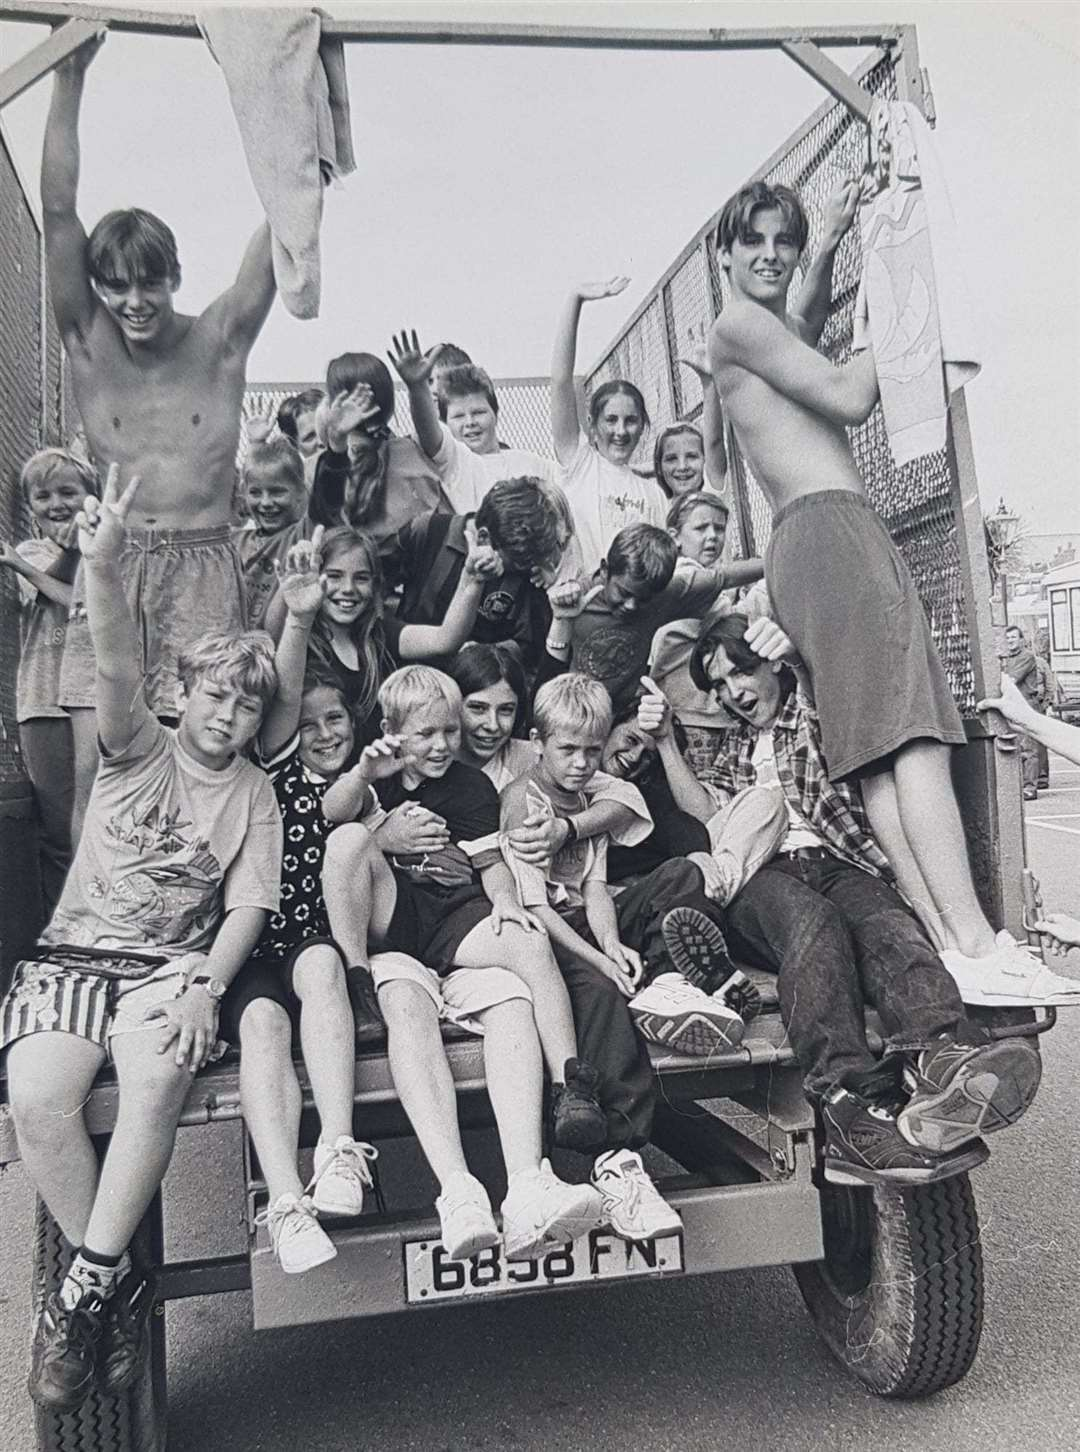 People enjoying a tractor ride at the Foxhunter Park site in the 1980s